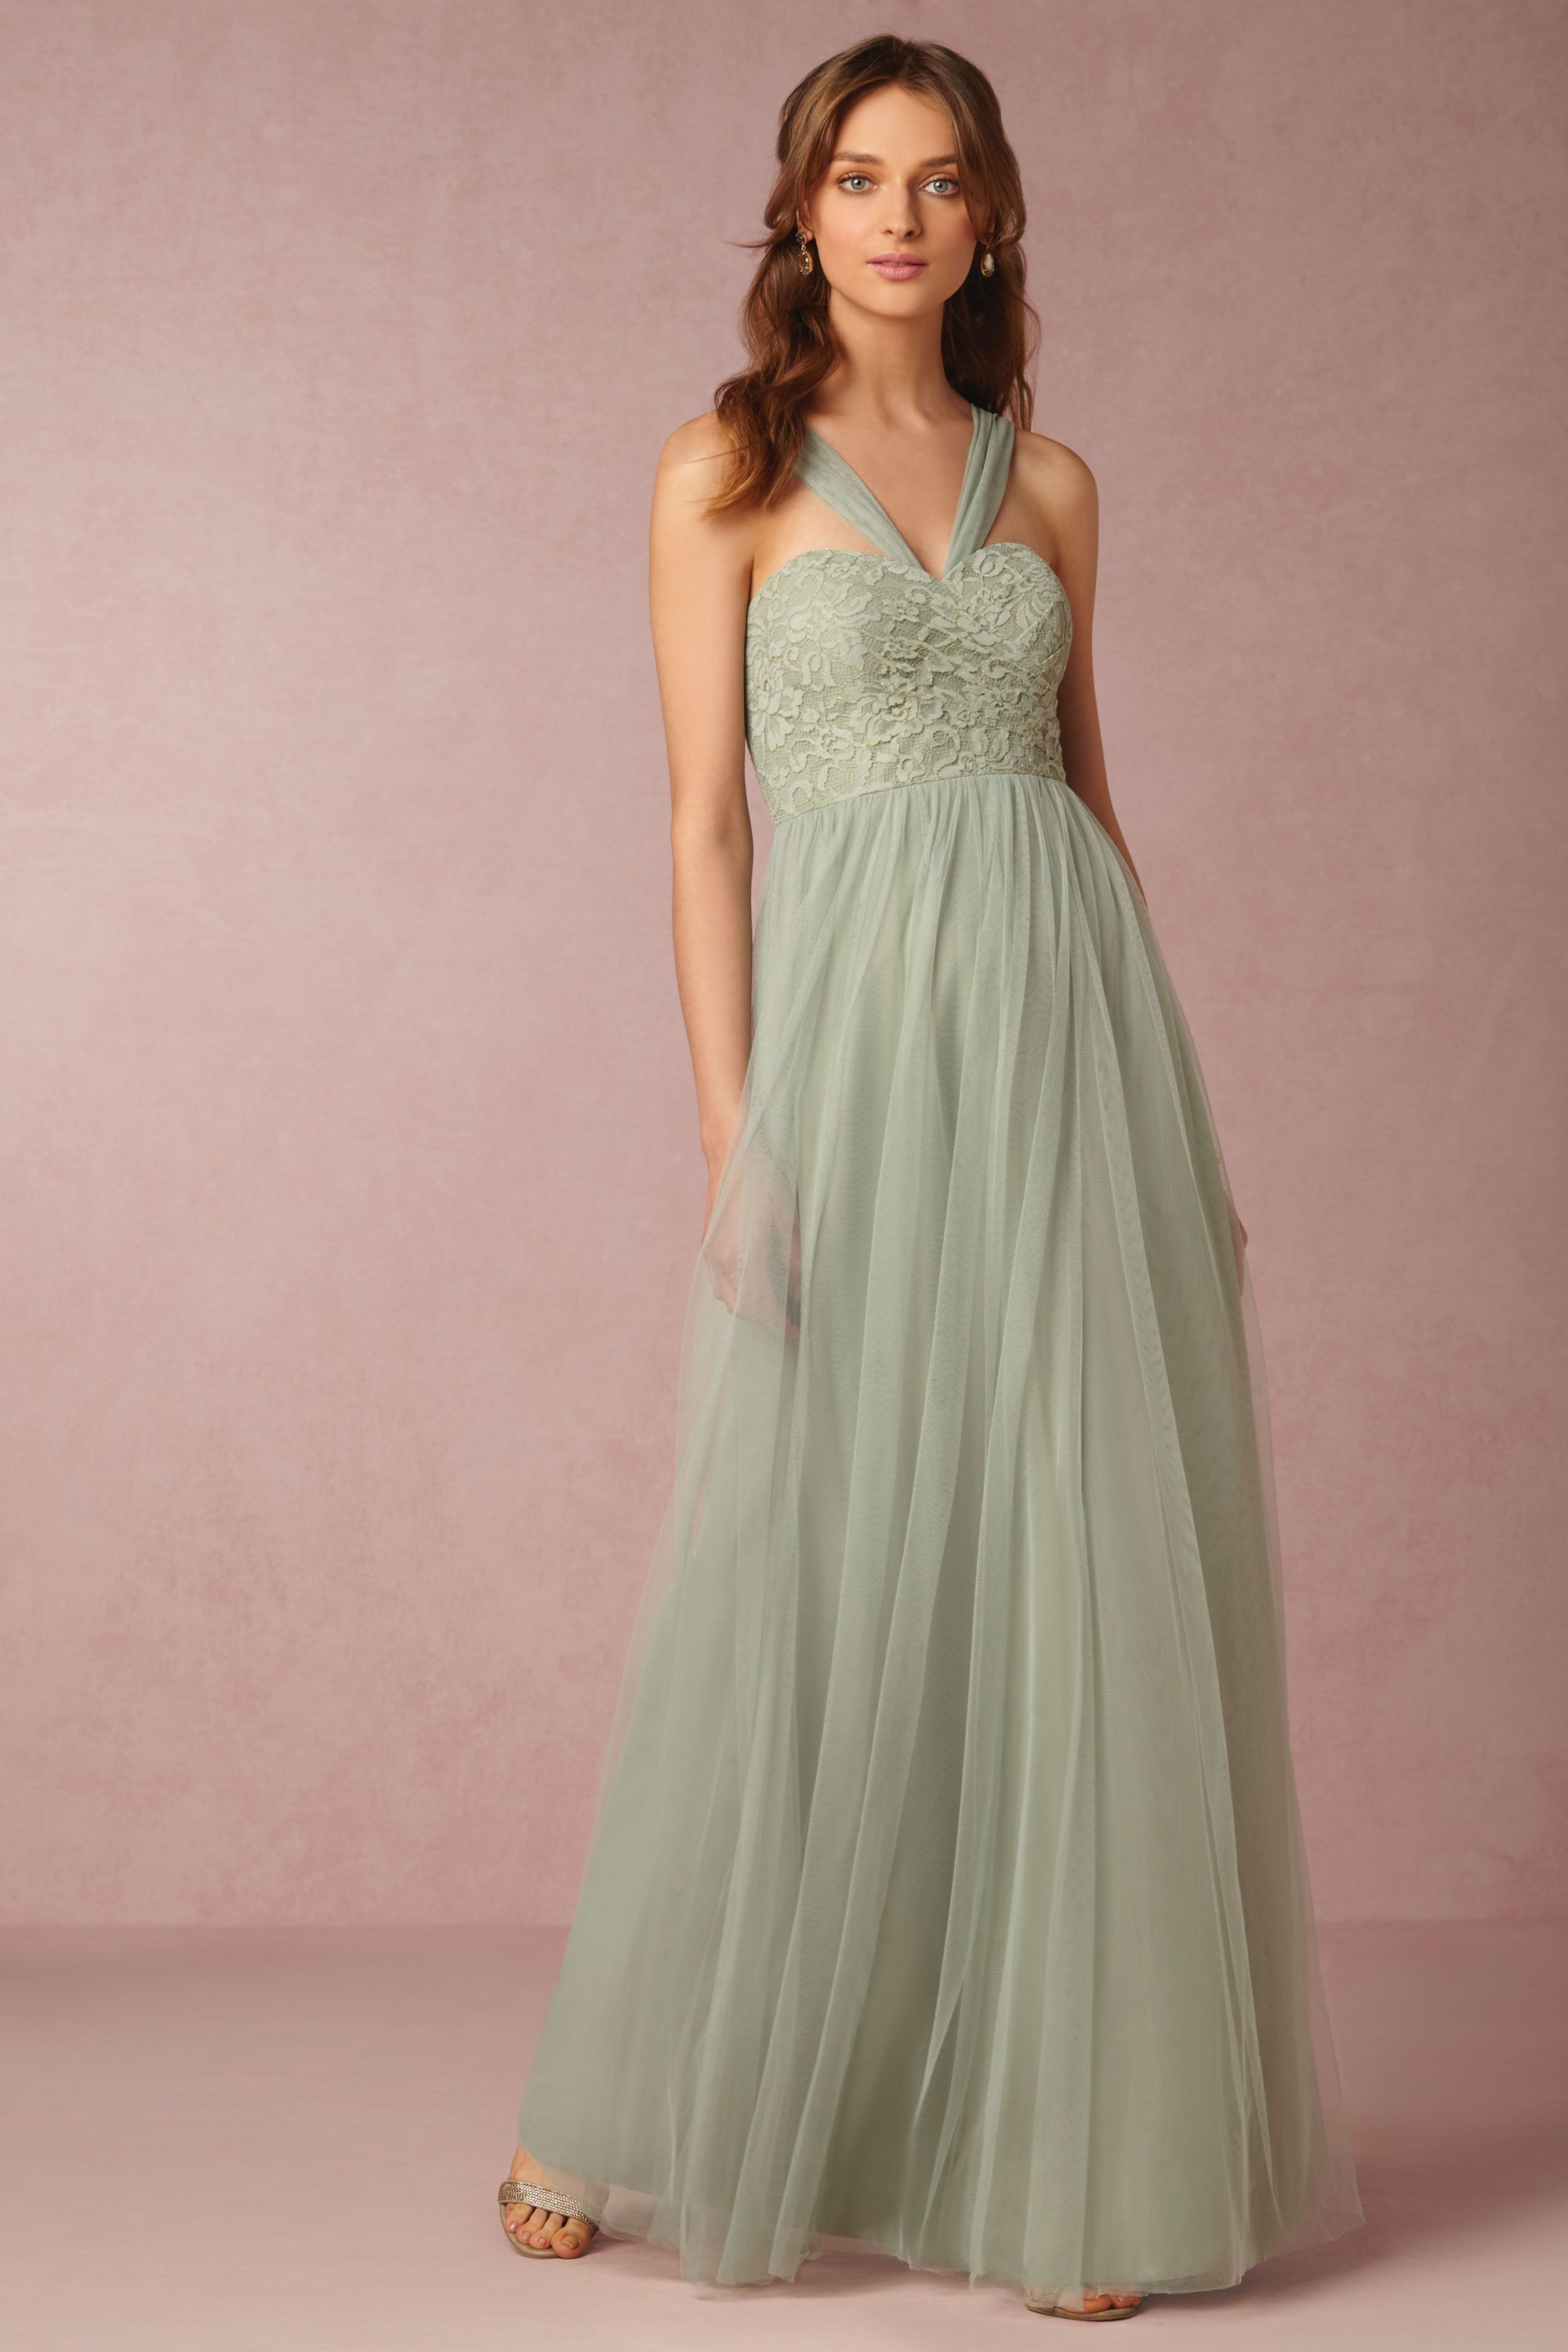 BHLDN Juliette Dress in Dresses View All Dresses at BHLDN | Dresses ...